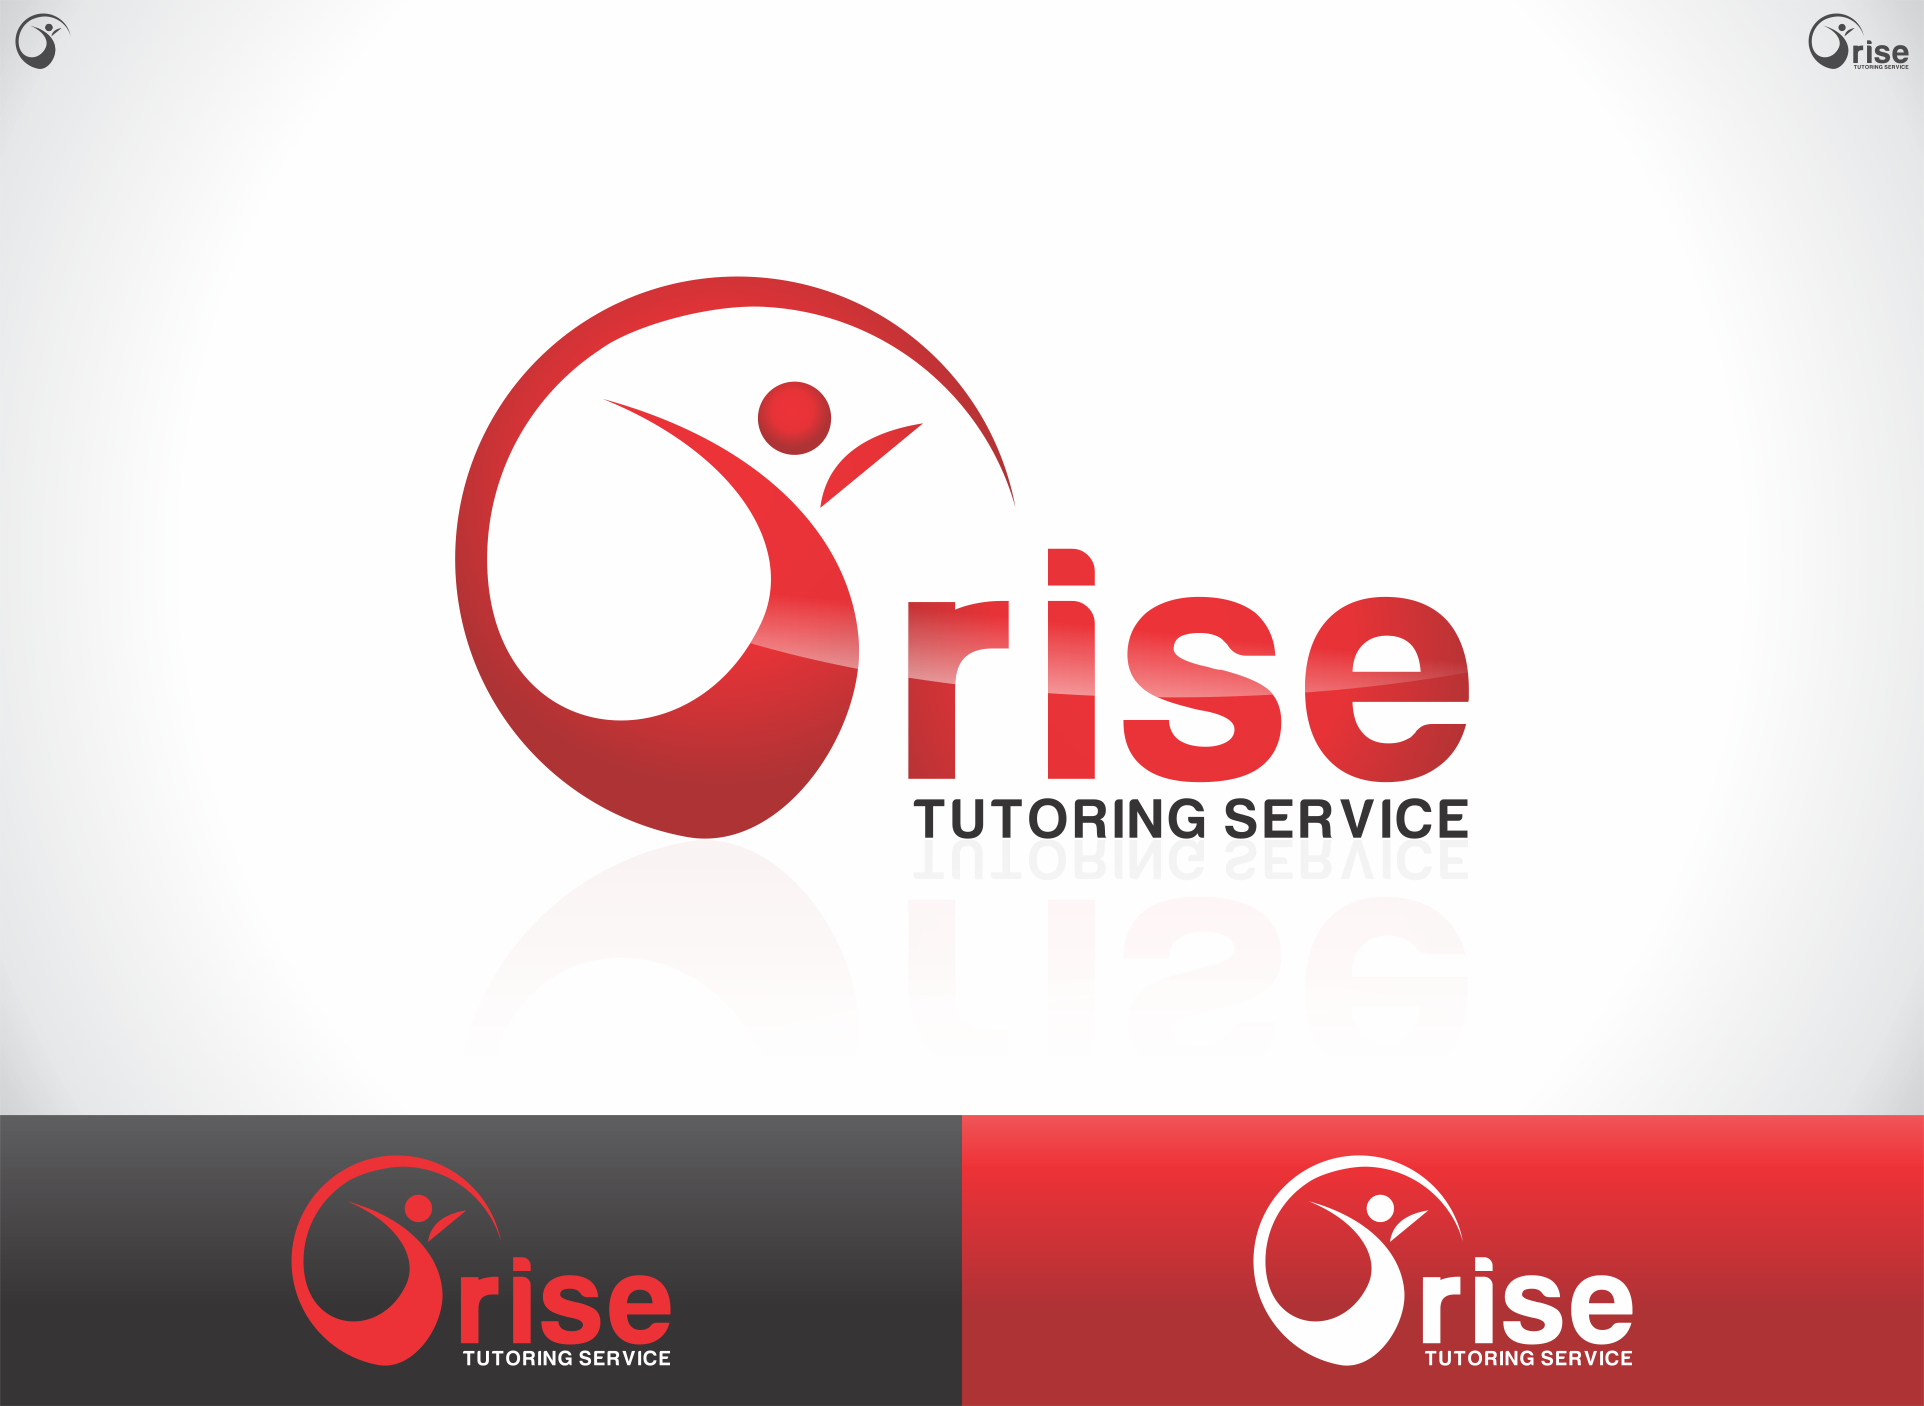 Logo Design by dandor - Entry No. 57 in the Logo Design Contest Imaginative Logo Design for Rise Tutoring Service.